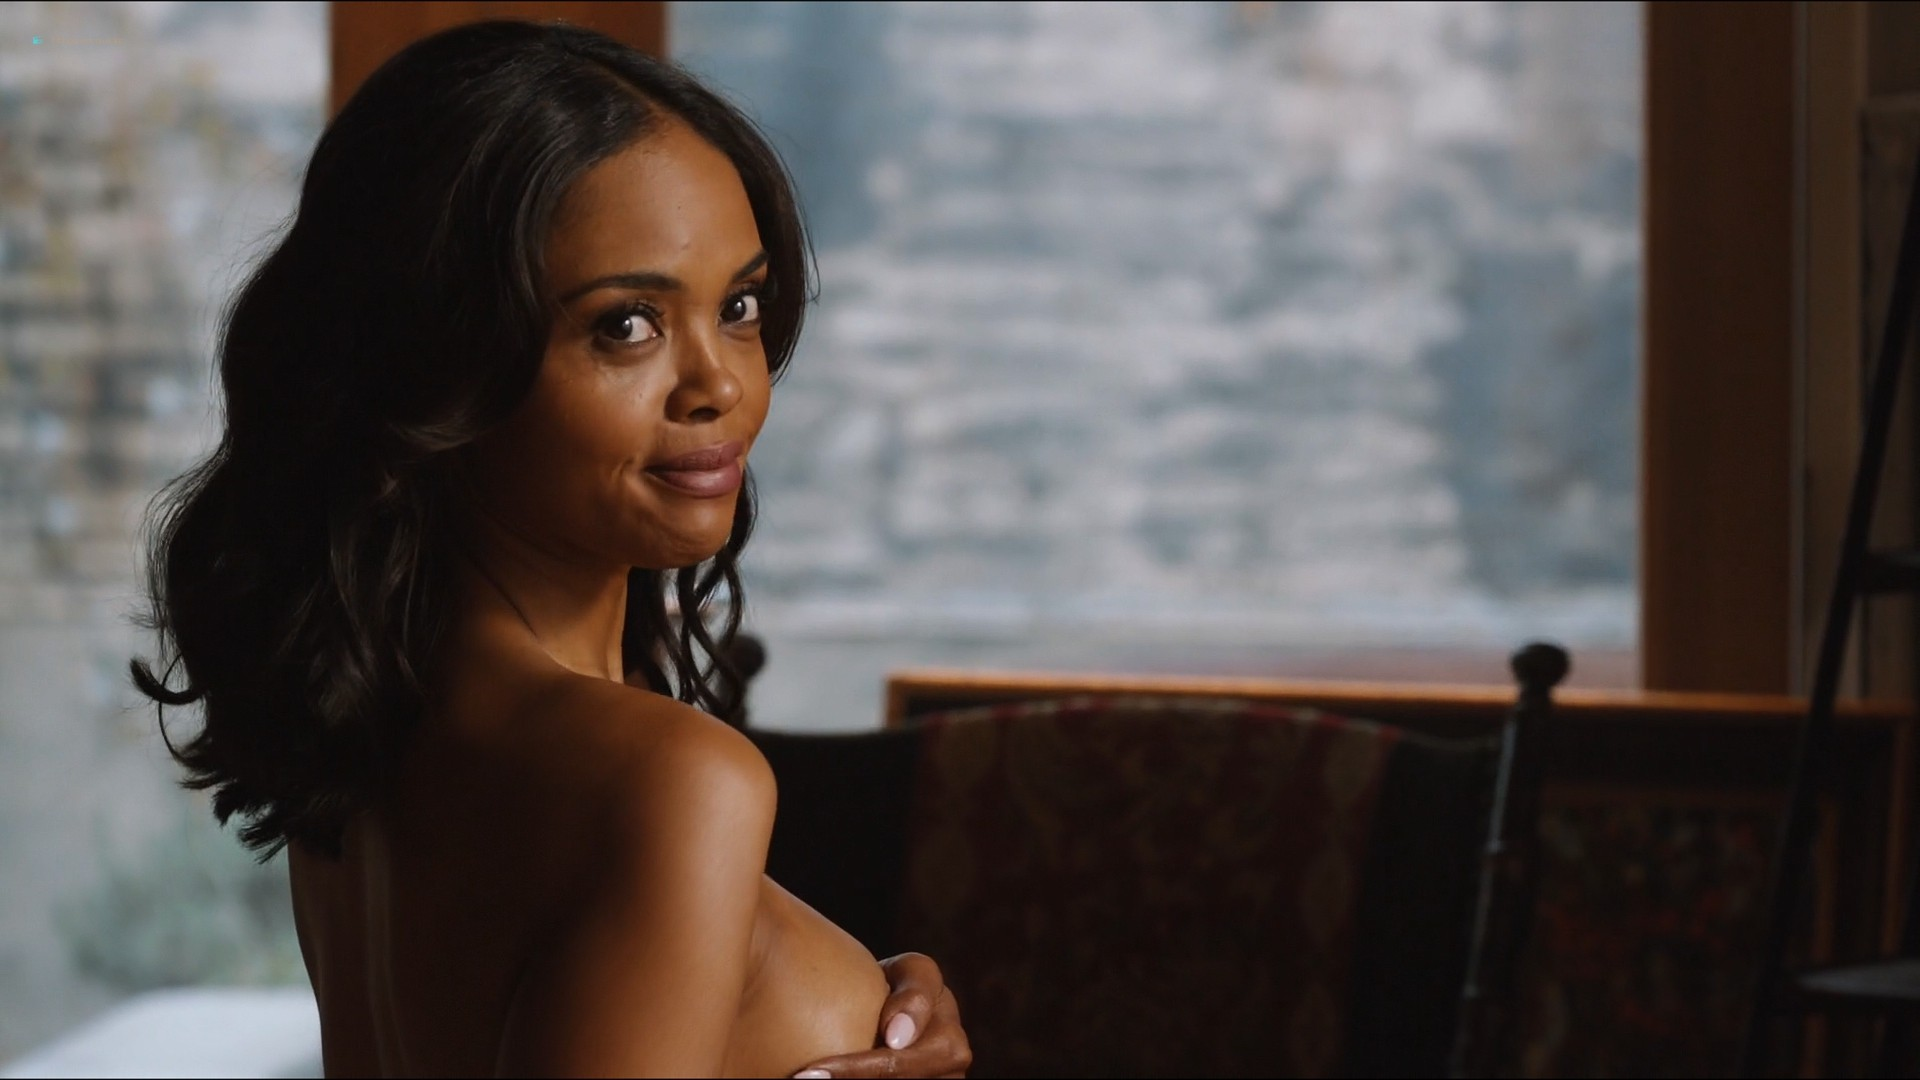 Sharon Leal nude and lot of sex others nude too - Addicted (2014) HD 1080p (9)